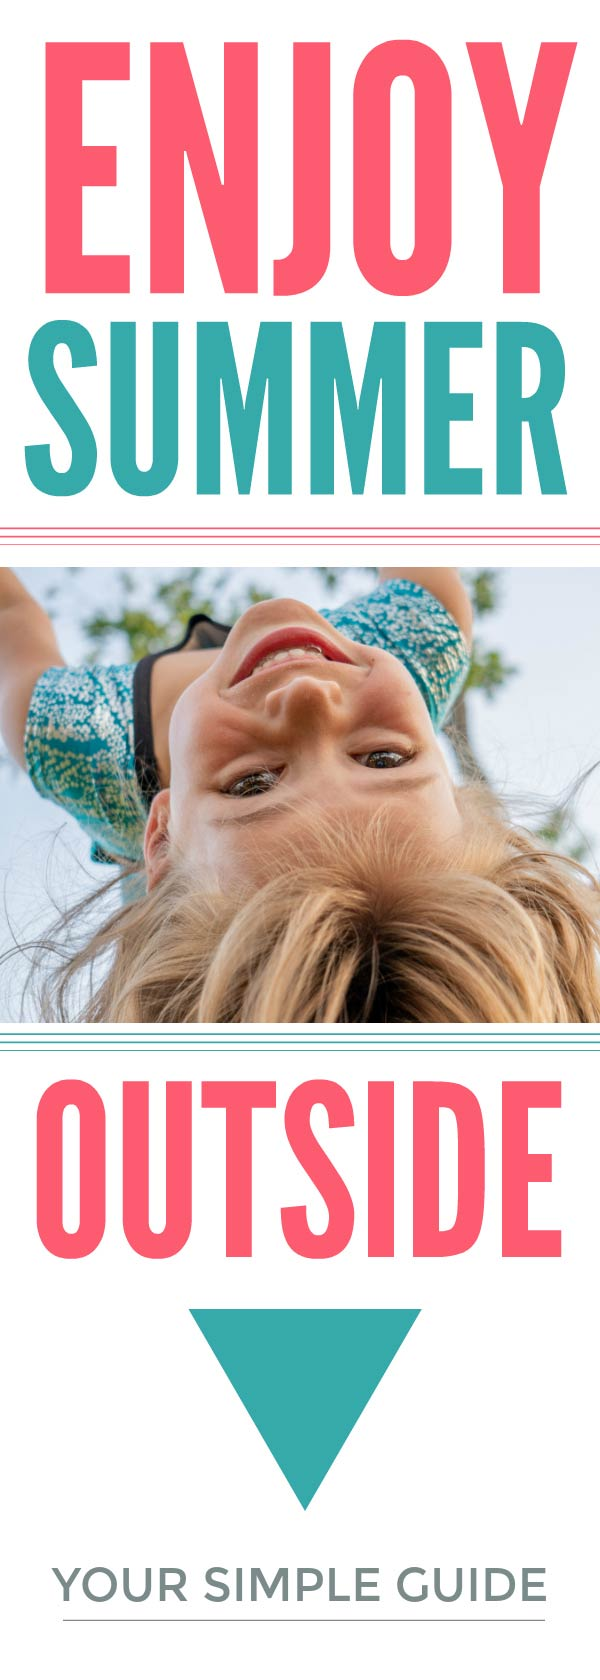 Outdoor fun for kids ideas - 101 simple, cool ideas for a summer of fun outside #summerkids #outoors #play #playmatters